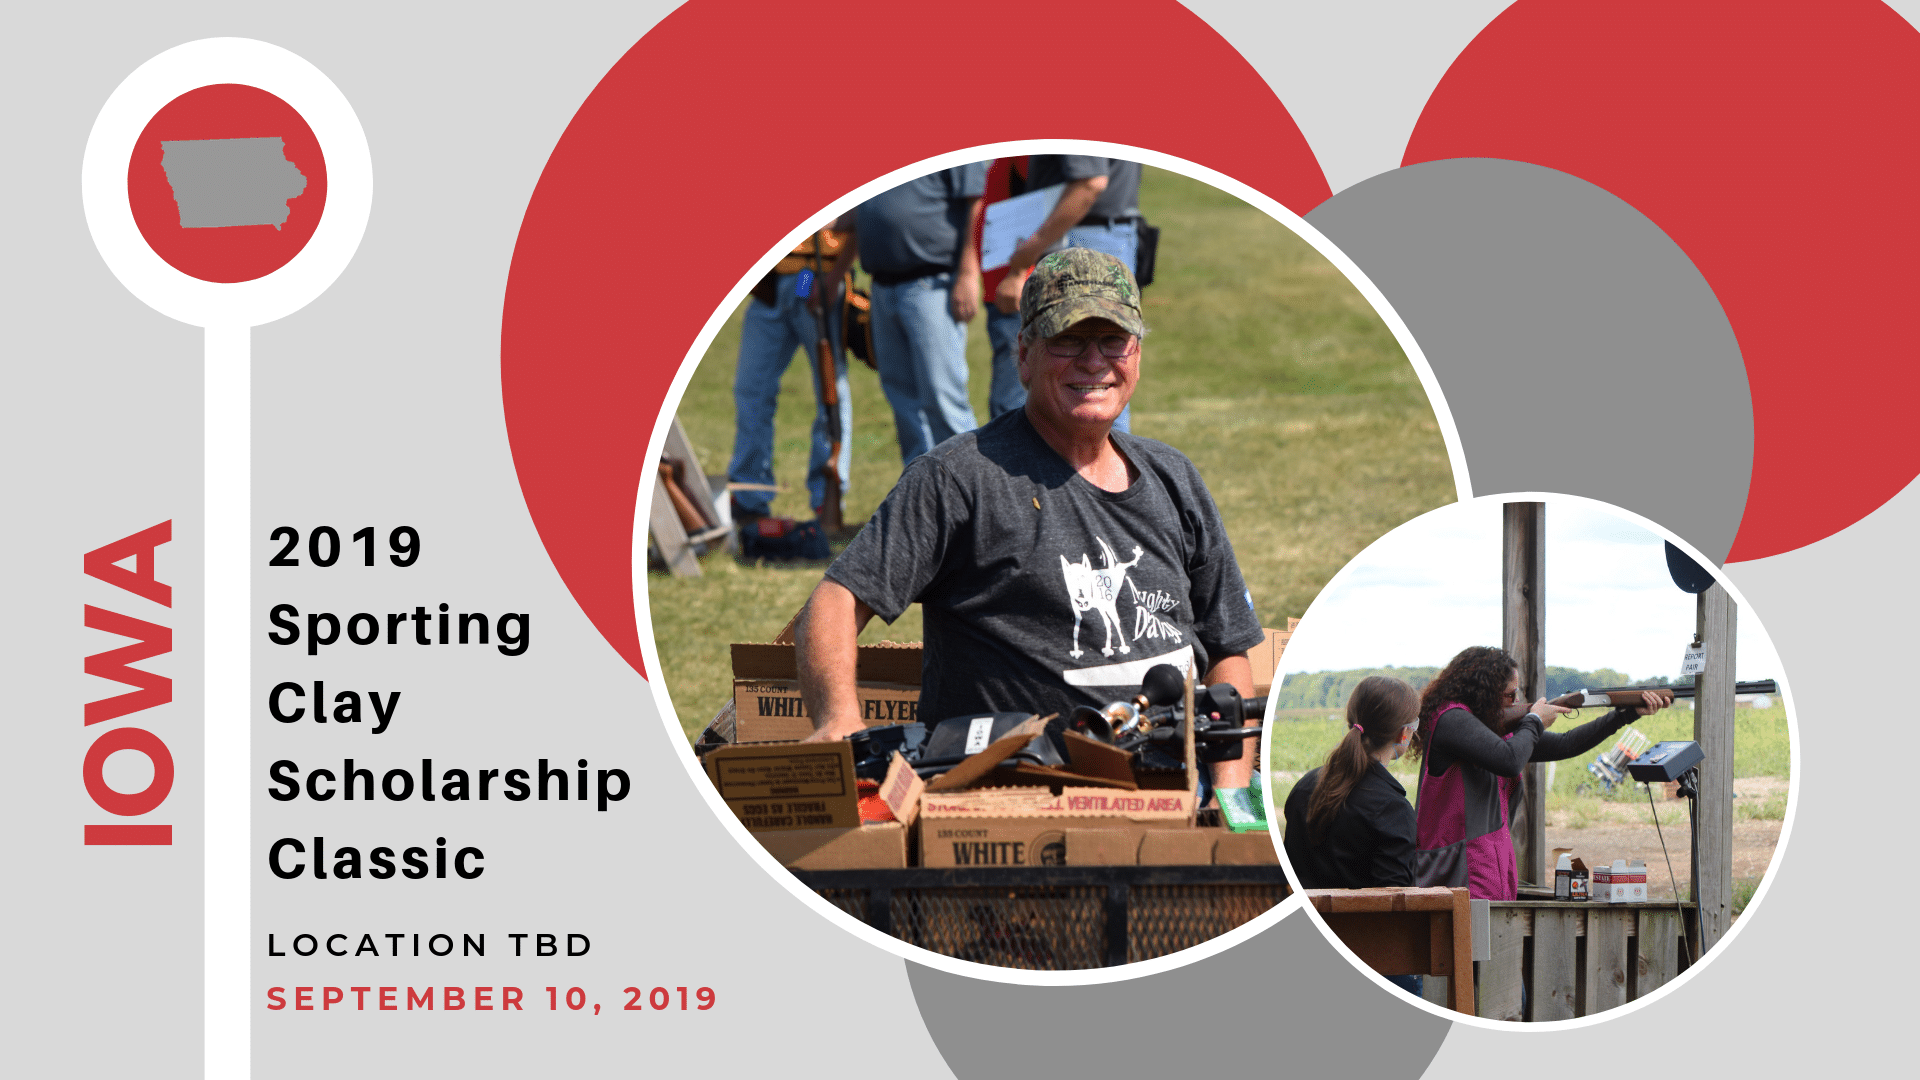 2019 Iowa Sporting Clay Scholarship Classic